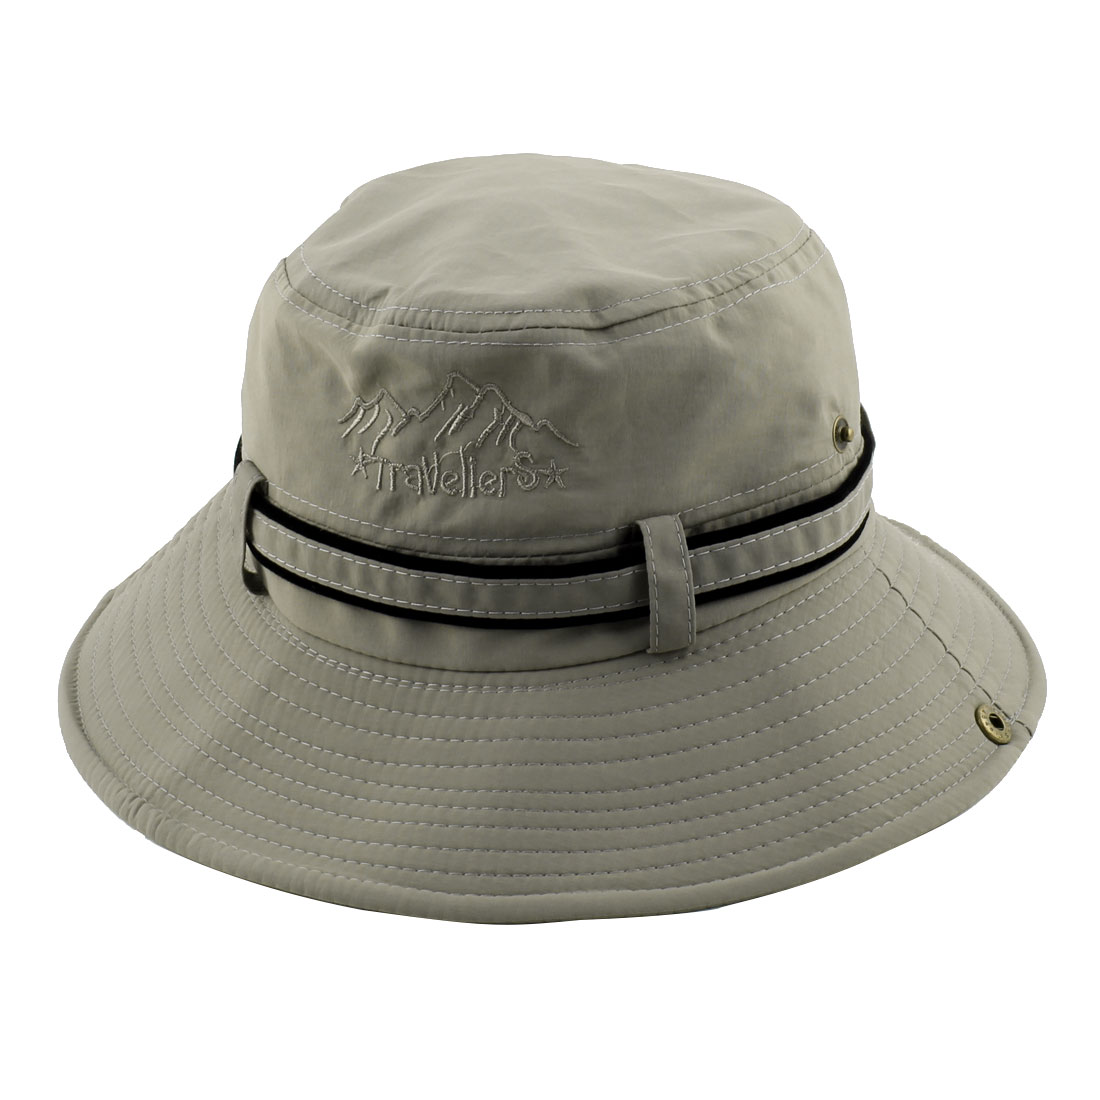 Fisherman Cotton Blends Outdoor Sports Climbing Hunting Adjustable Strap Wide Brim Bucket Summer Cap Fishing Hat Gary